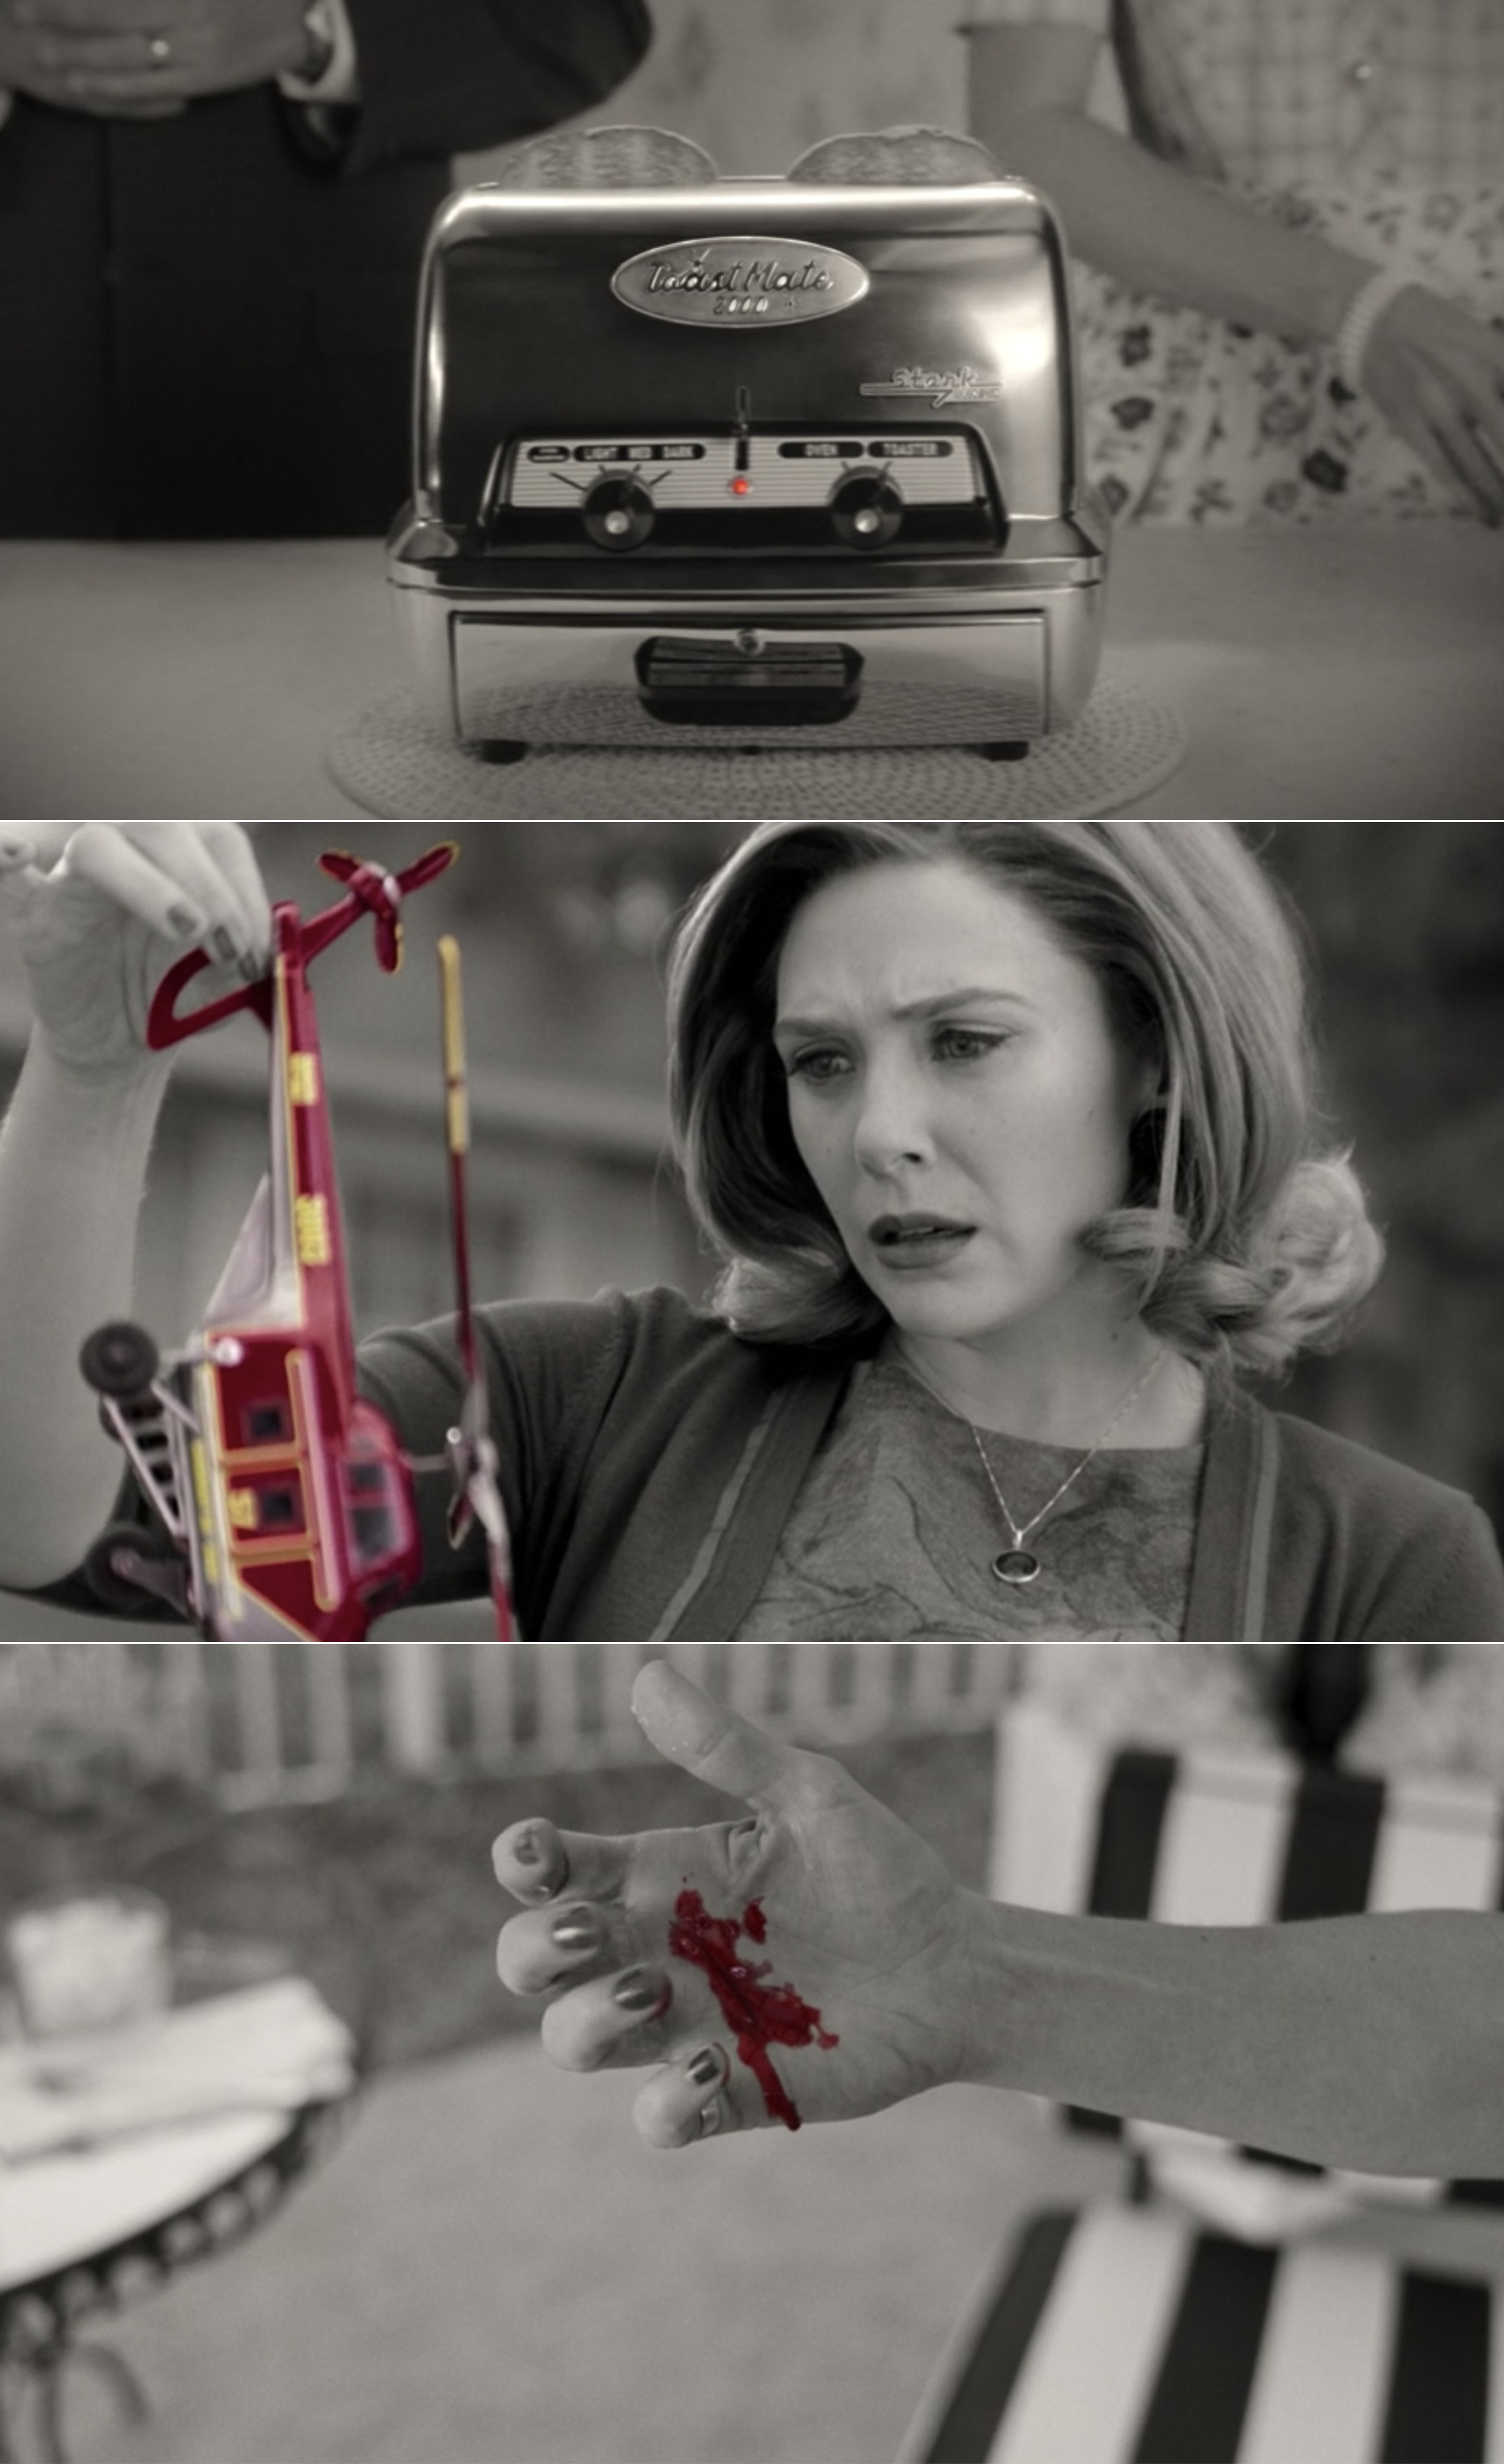 A red light on a toaster, the red helicopter Wanda finds, and blood on someone's hand